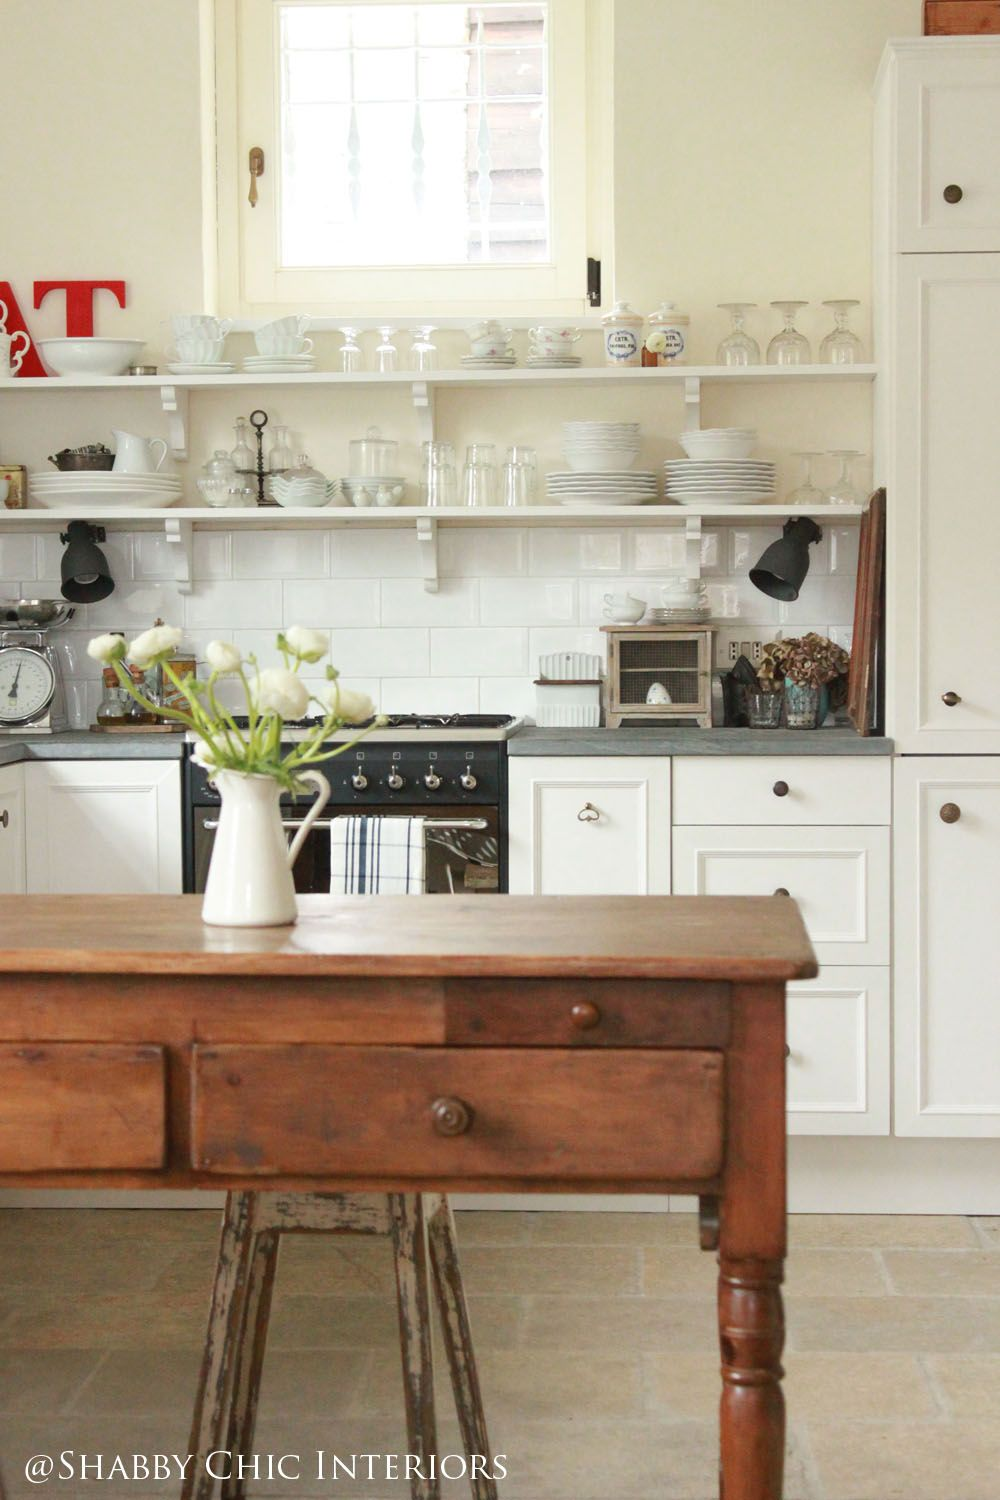 Cucine Country Chic Ikea.Shabby Chic Kitchen With Long Styled Shelves Interiors Restyling